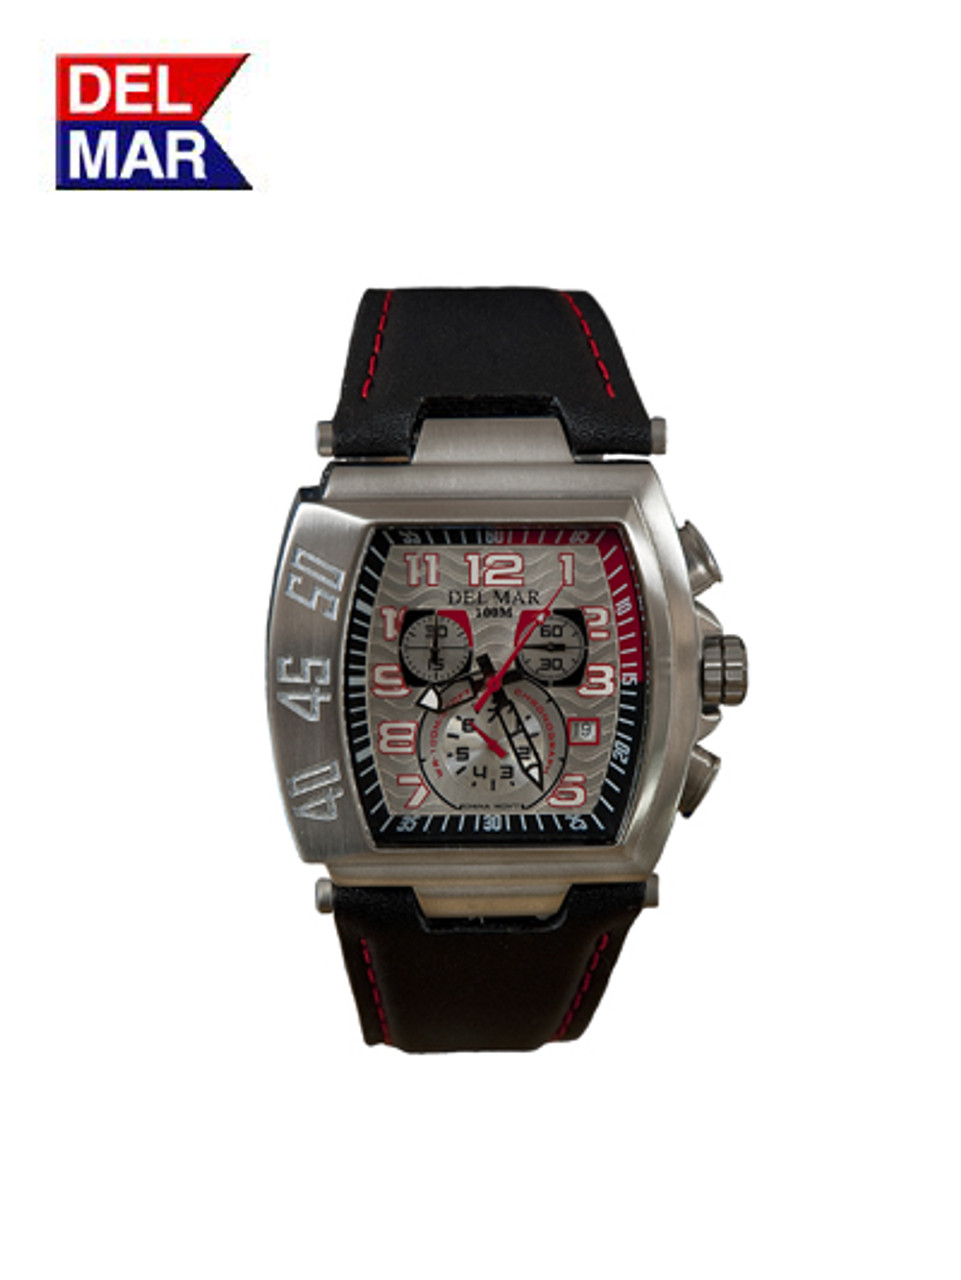 Del Mar Men's 100M Chronograph Rugged Sports Watch with Silver and Red Dial